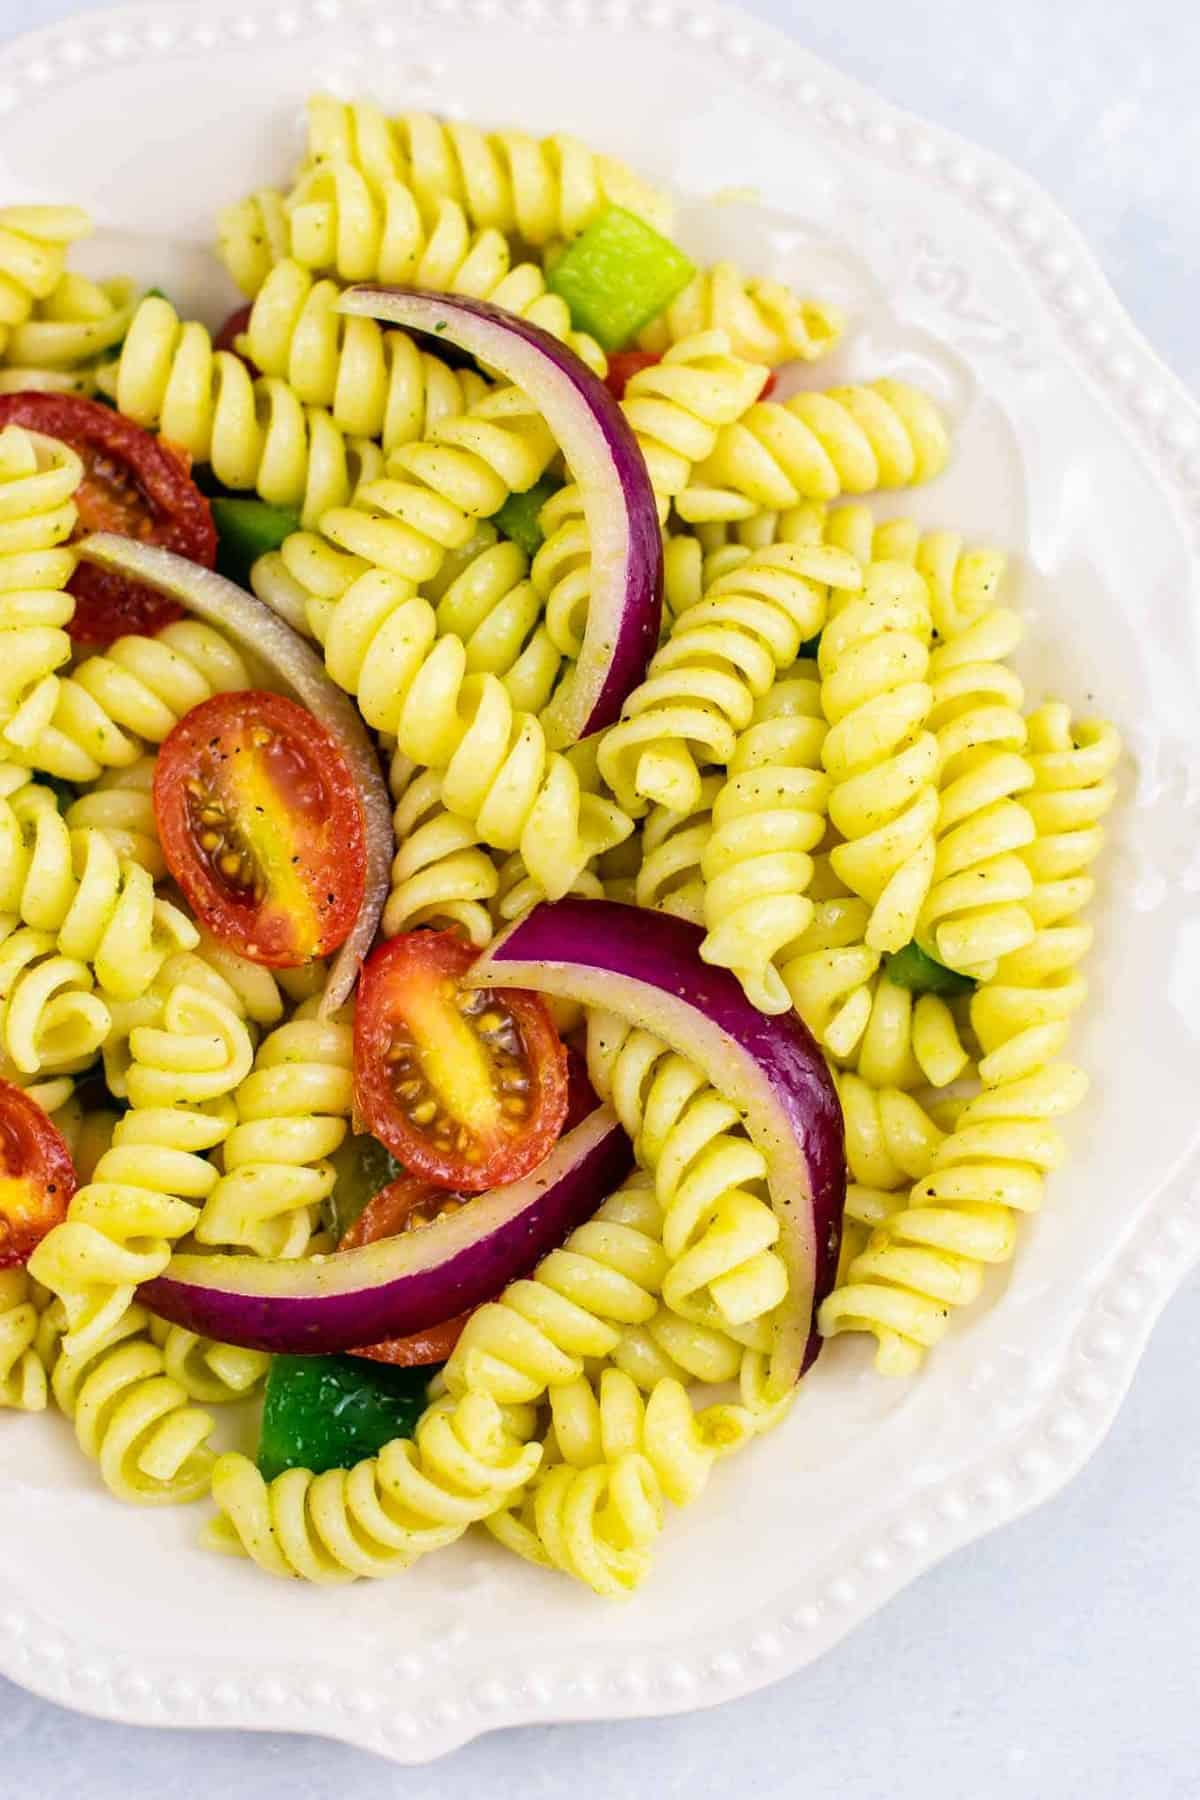 Vegan pasta salad recipe – this was AMAZING! So much flavor and really easy to make. #vegan #pastasalad #vegetarian #sidedish #summer #meatless #dairyfree #healthyrecipe #veganpastasalad